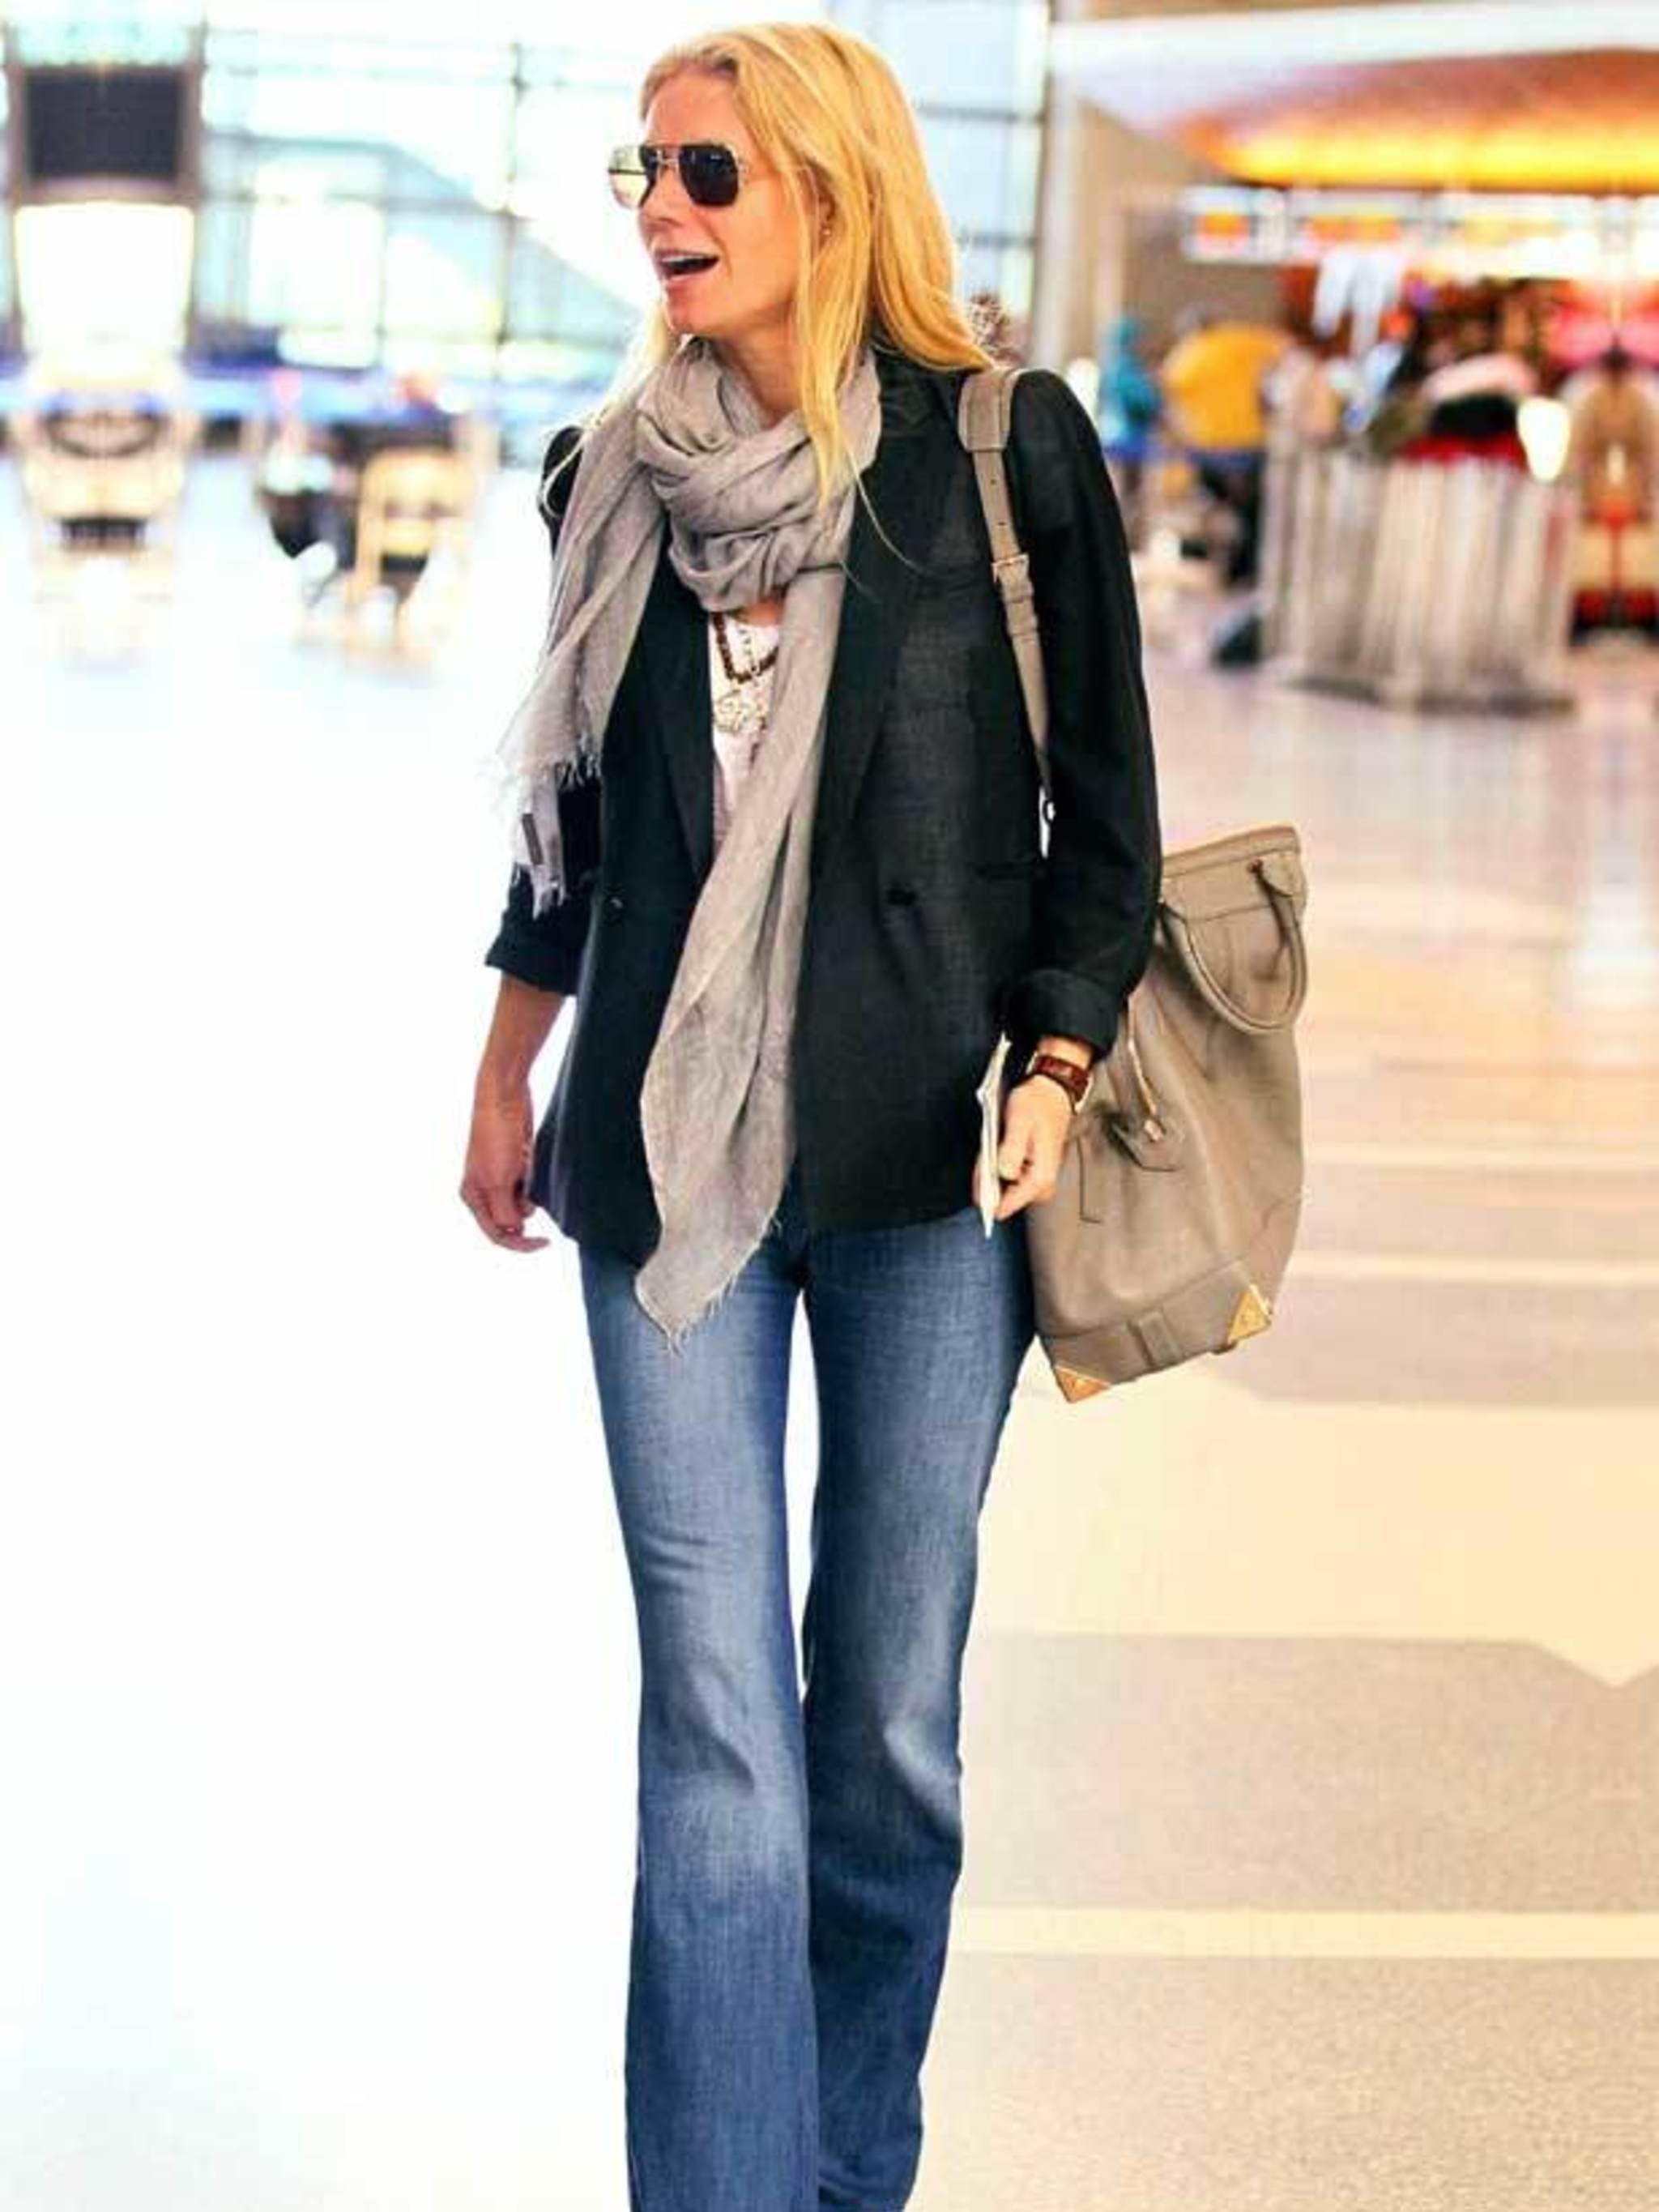 Buy Paltrow gwyneth street style summer picture trends